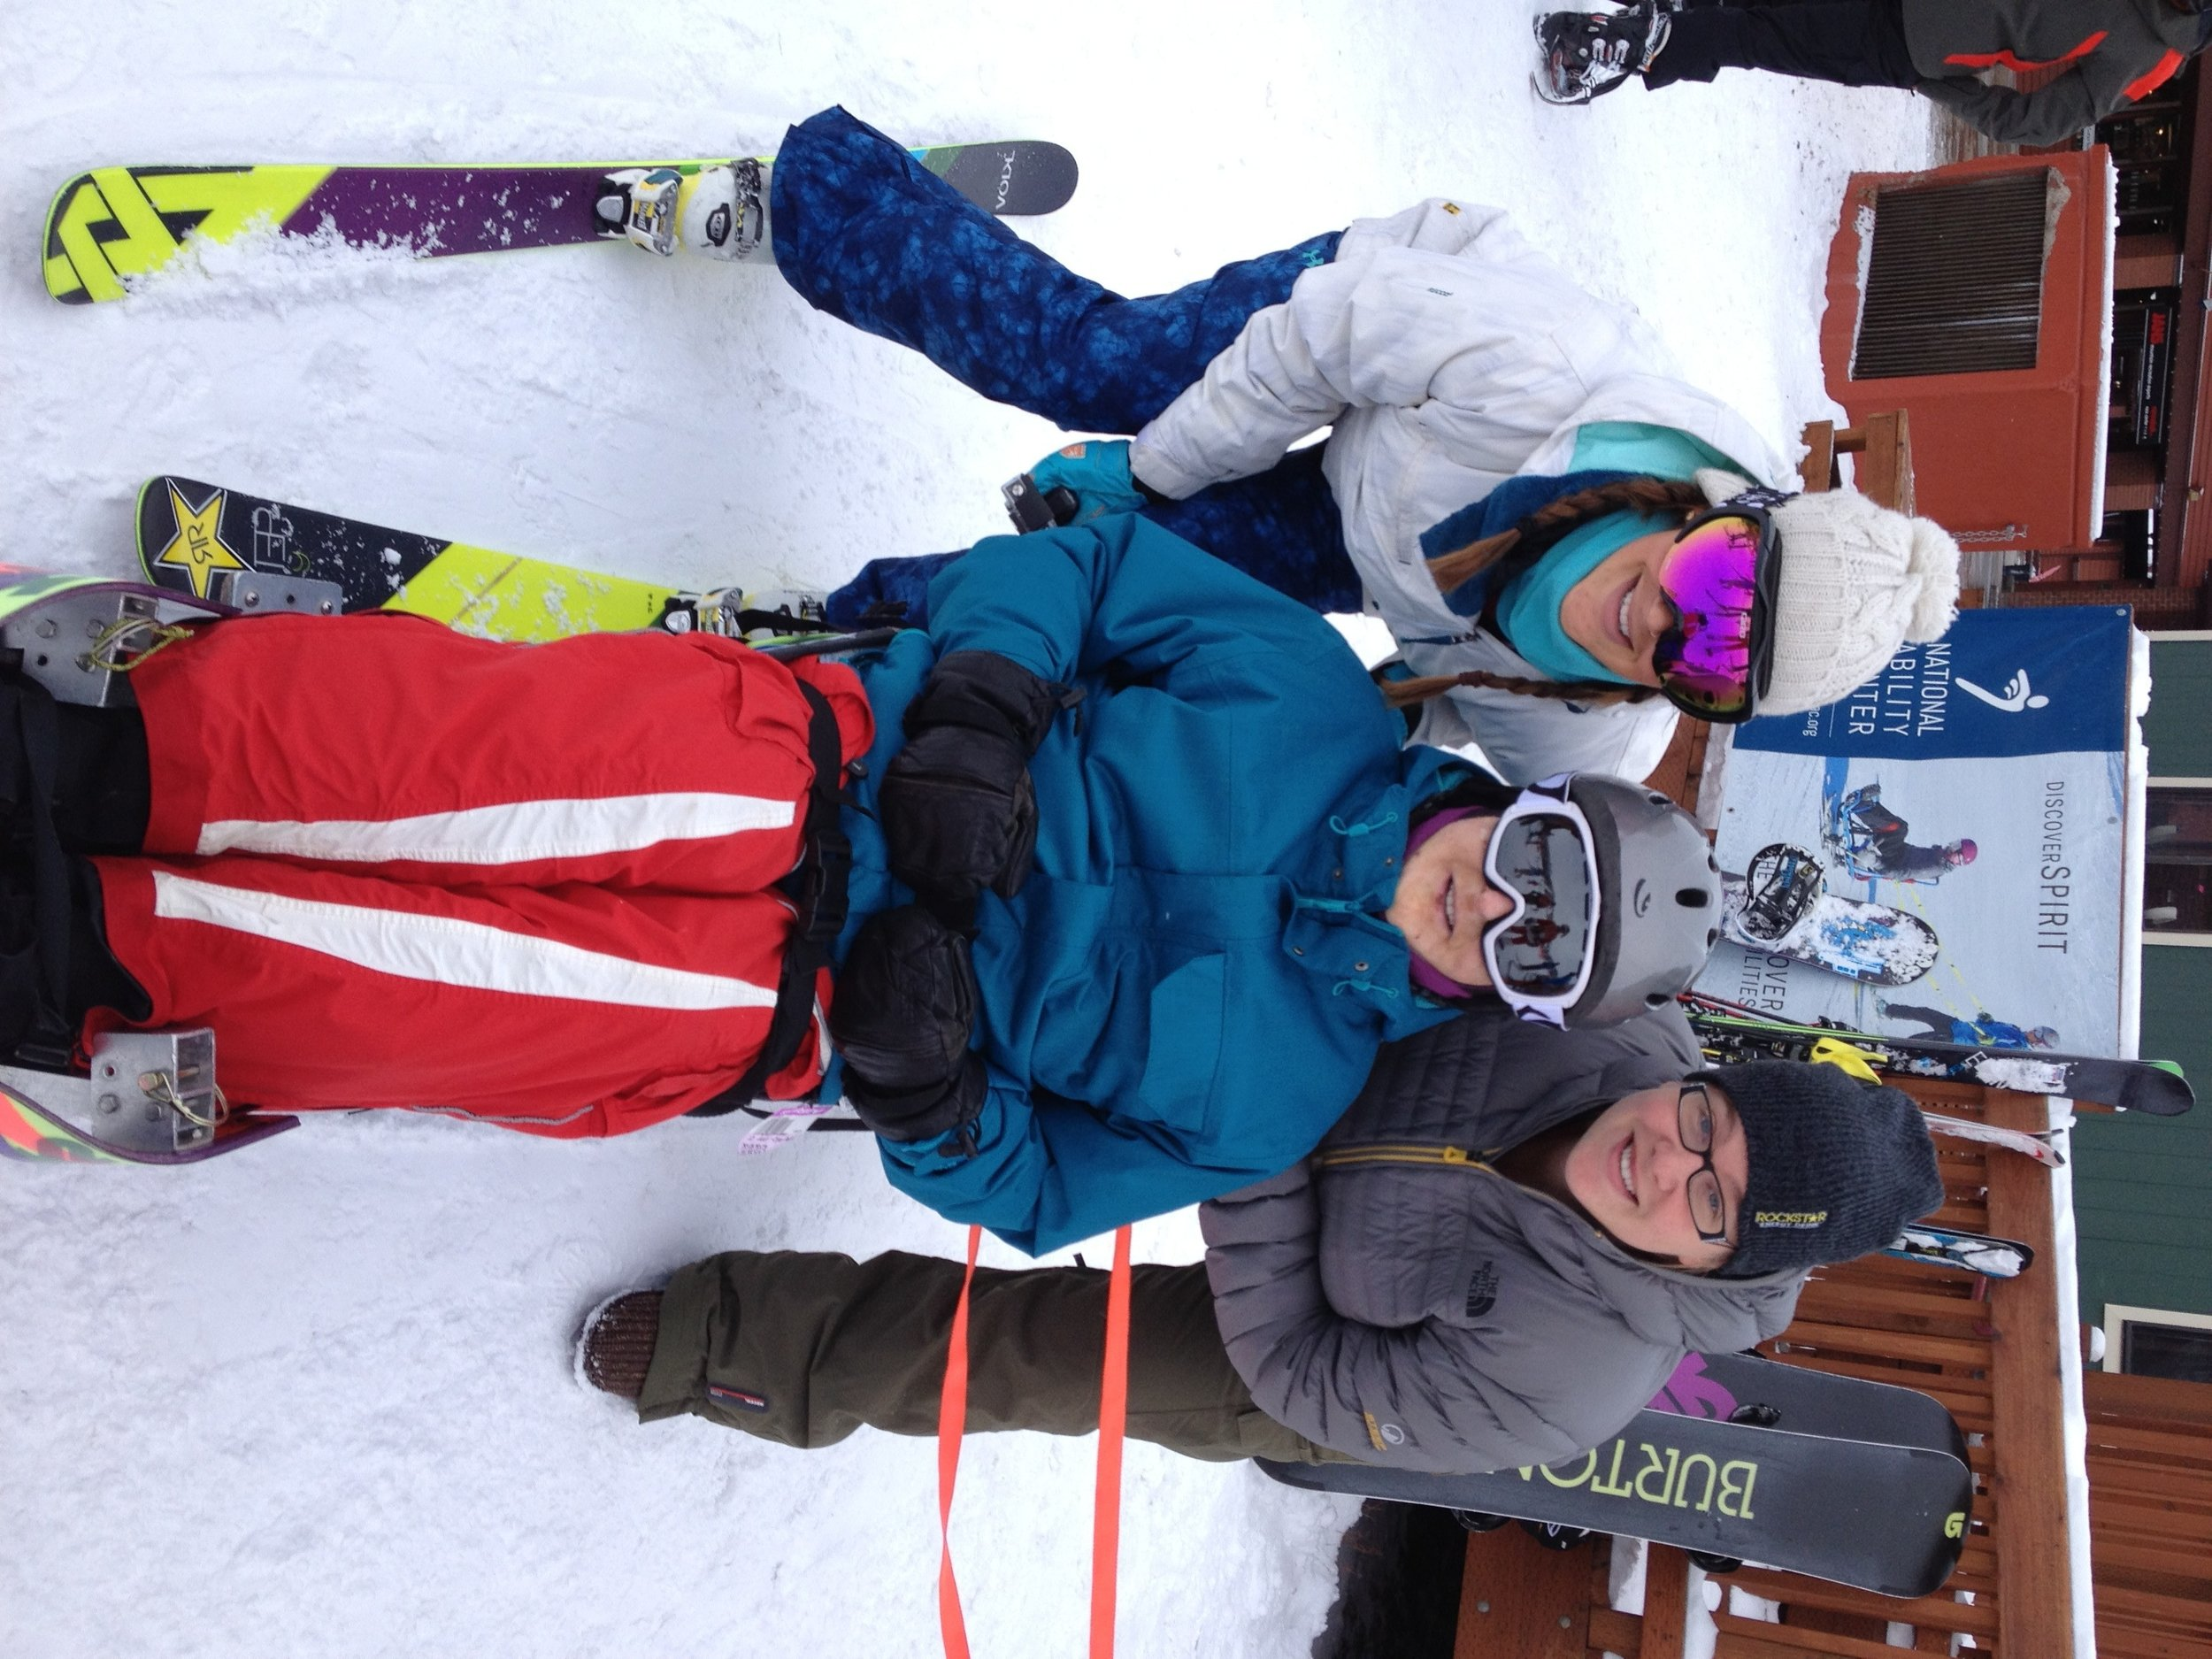 Me and my sister took our dad to the National Ability Center to sit-ski on Christmas Day 2014. We had no idea it would be our last Christmas together.